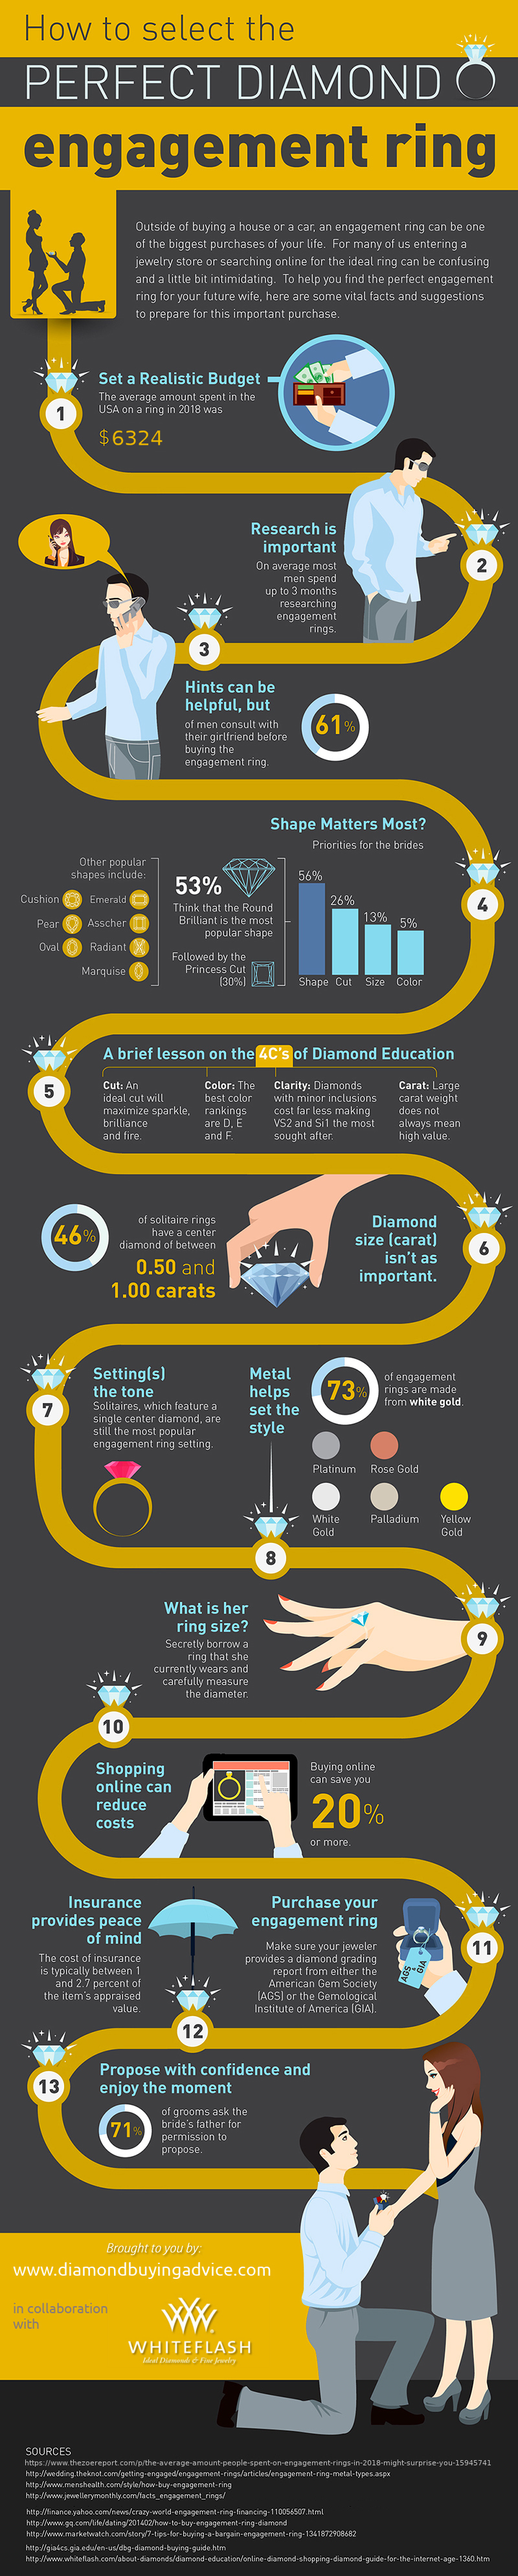 How To Select The Perfect Diamond Engagement Ring